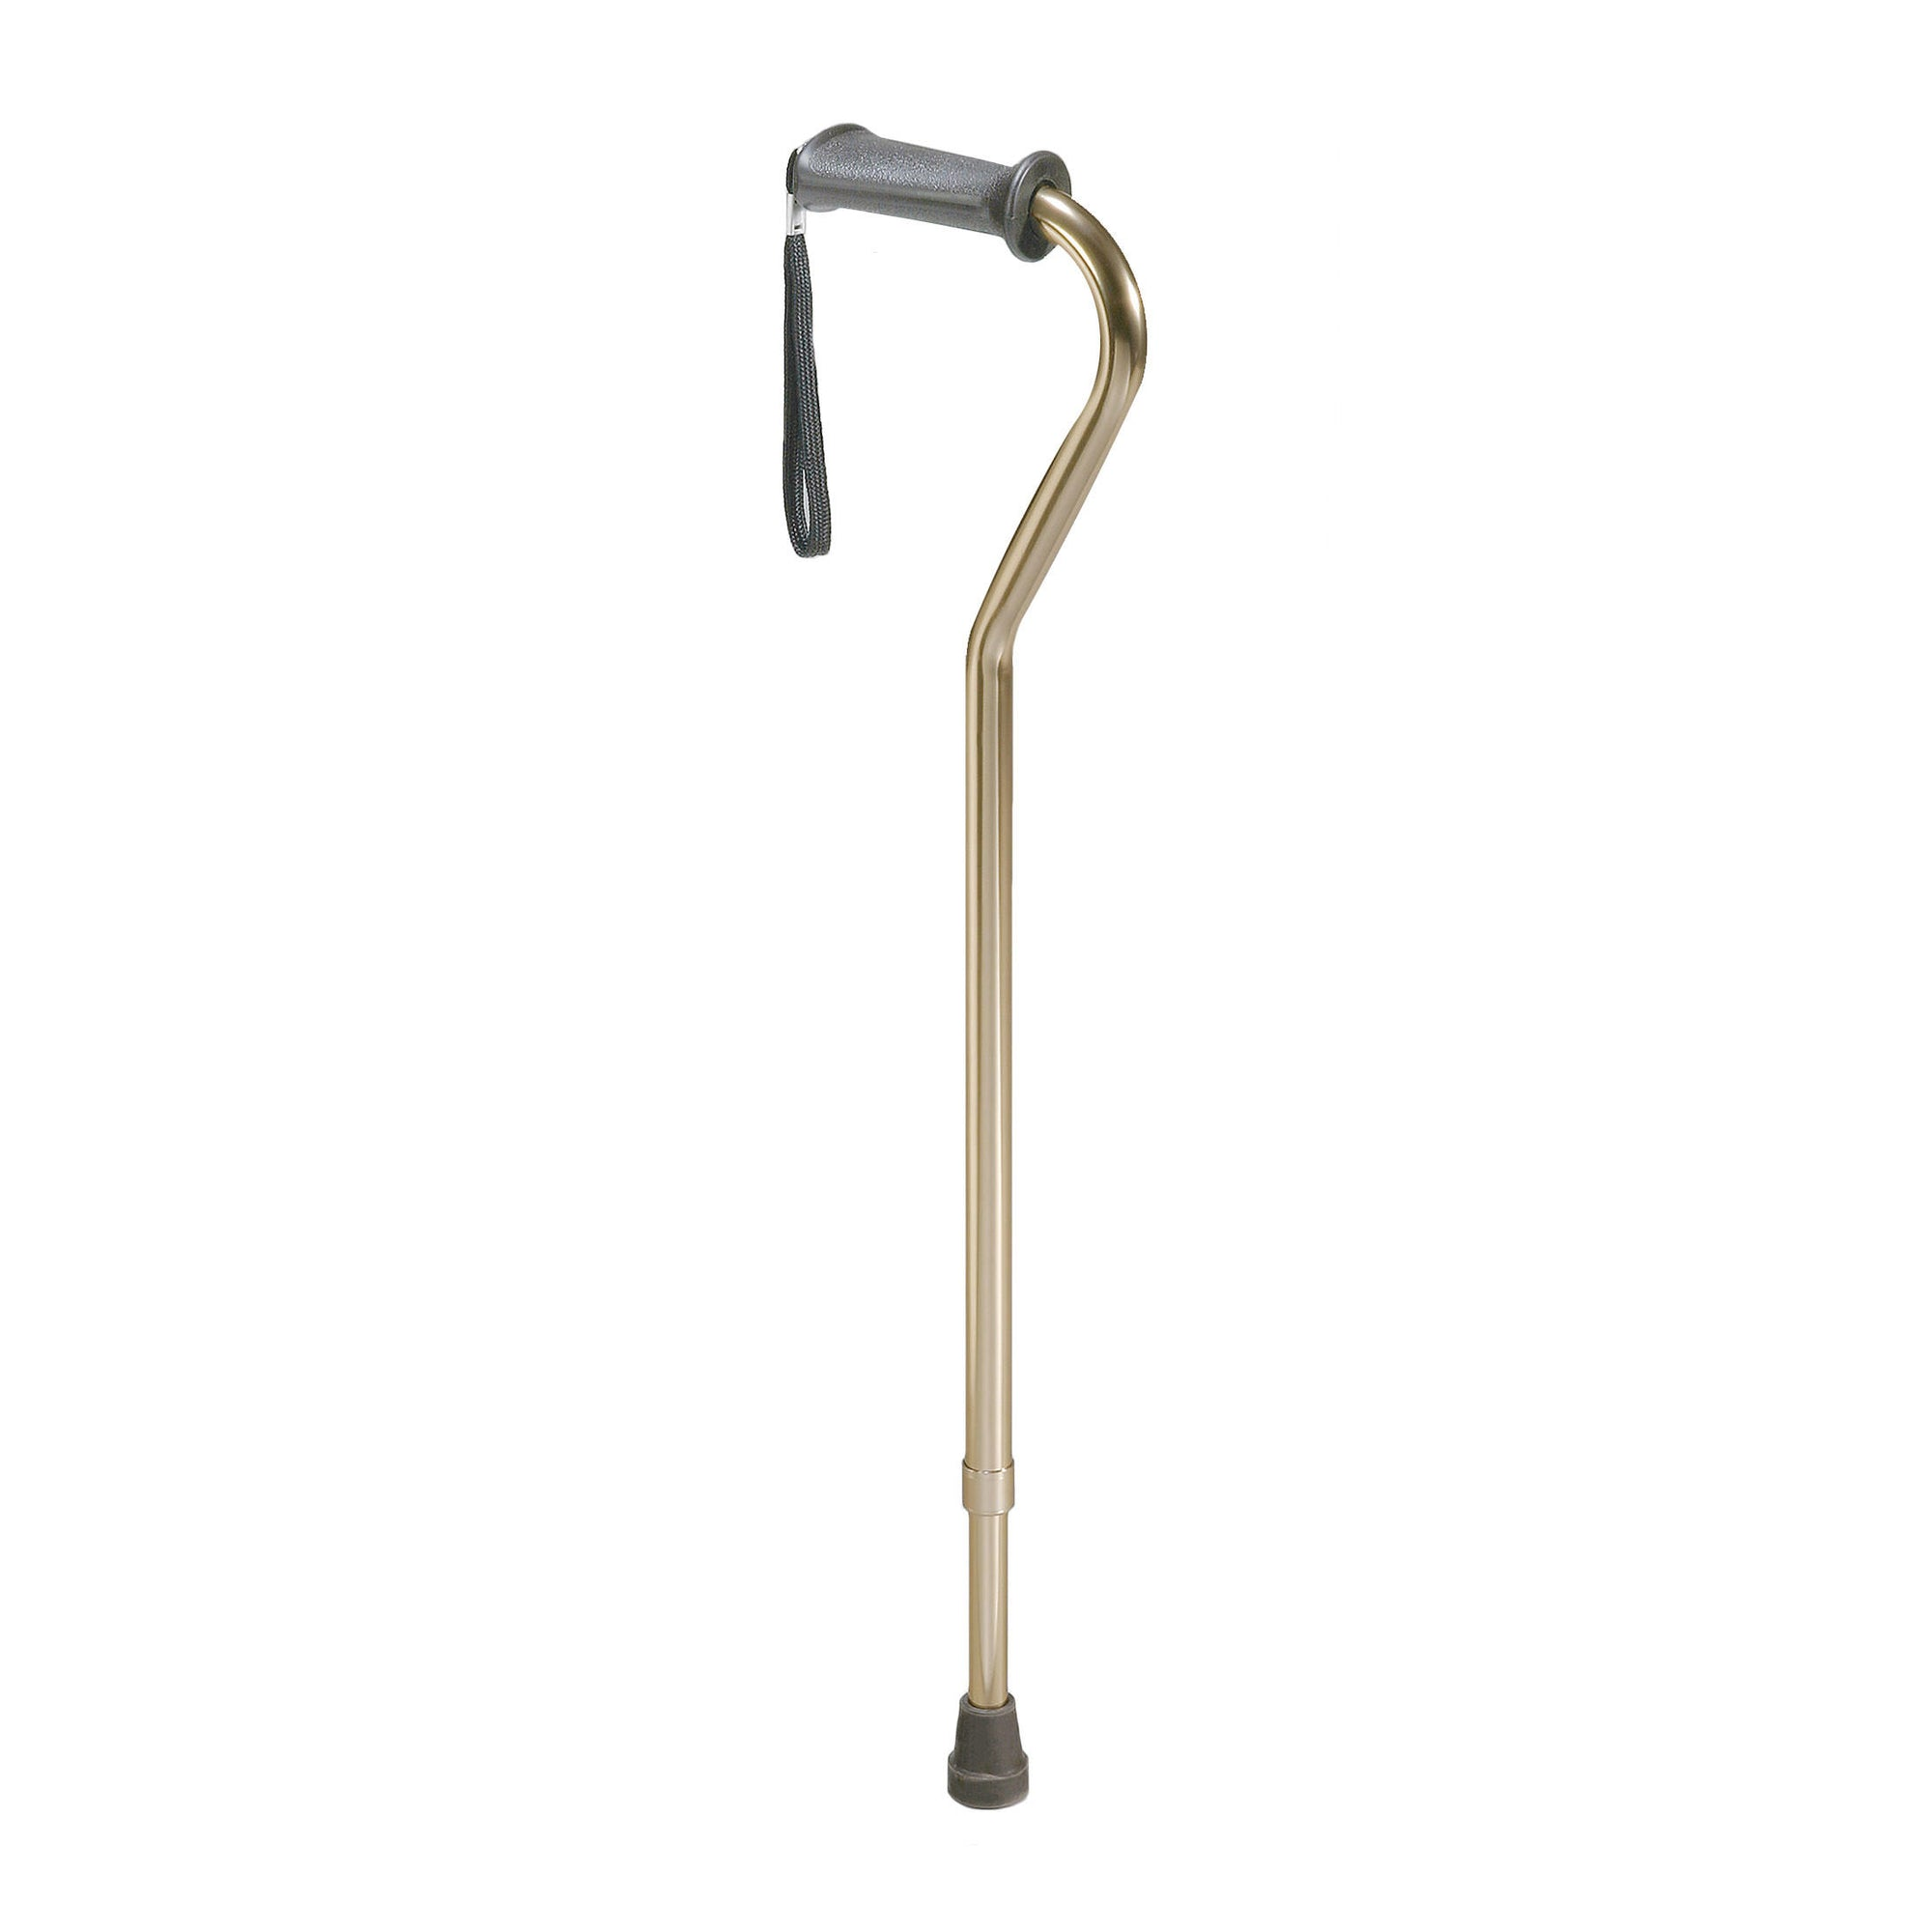 Drive Offset Cane with Angle-Adjustable Grip